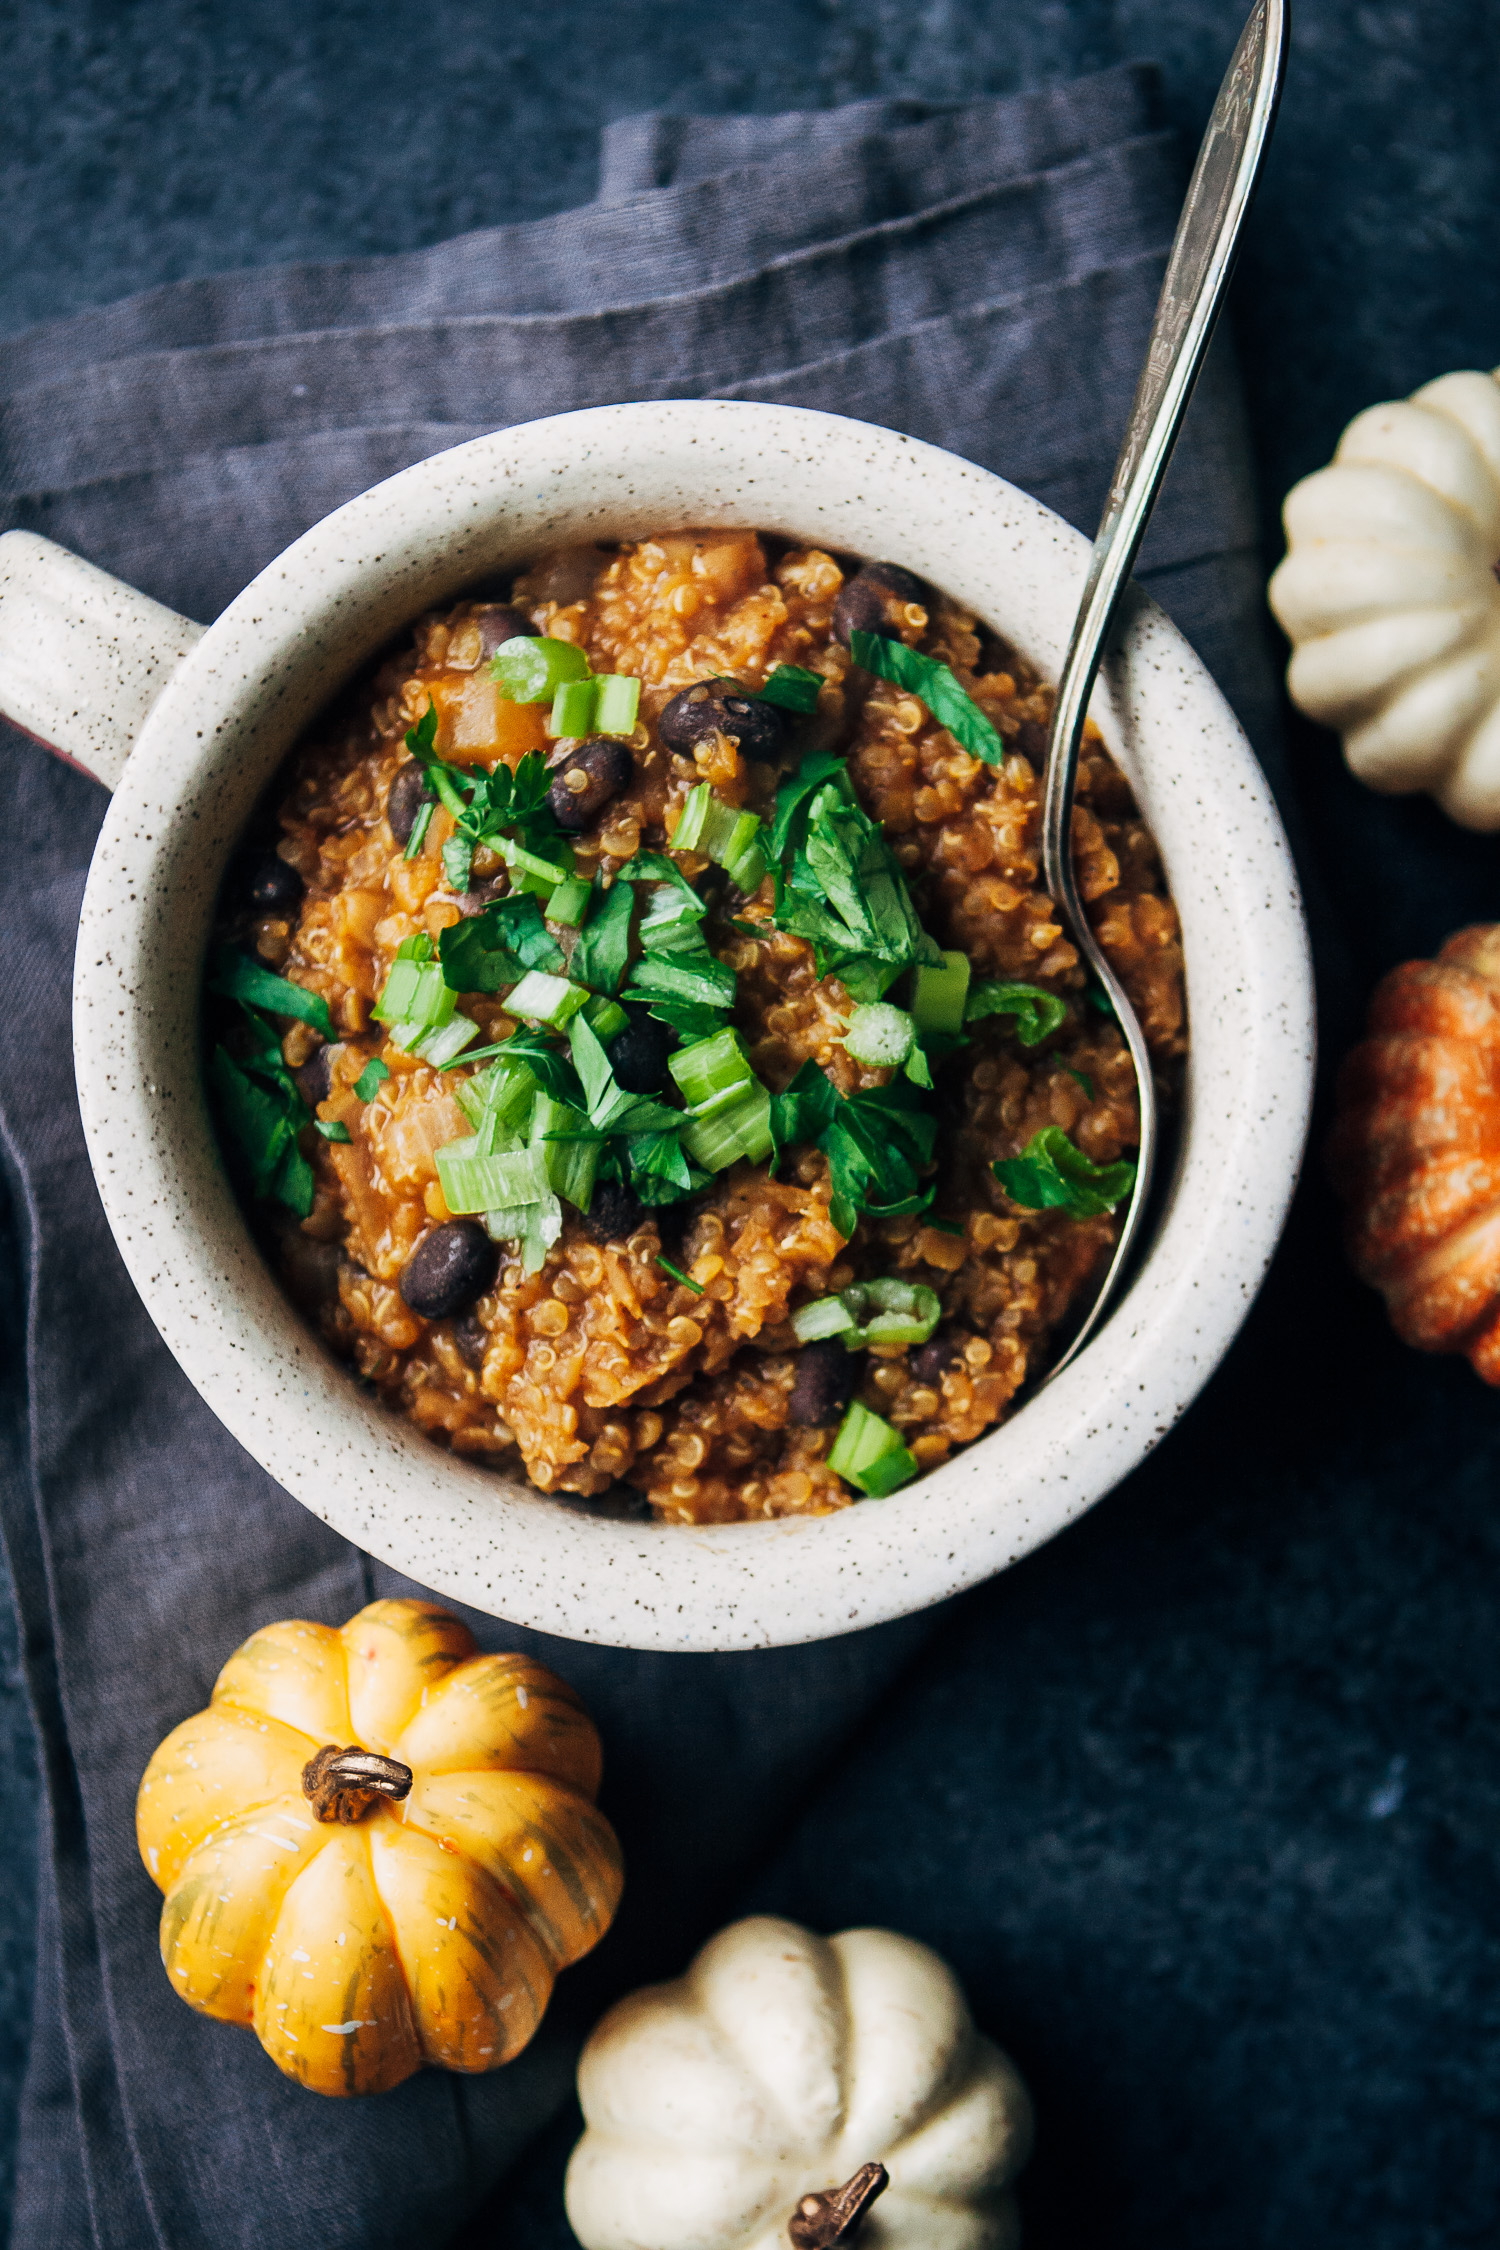 7 Vegetarian Chili Recipes That Are Anything But Boring